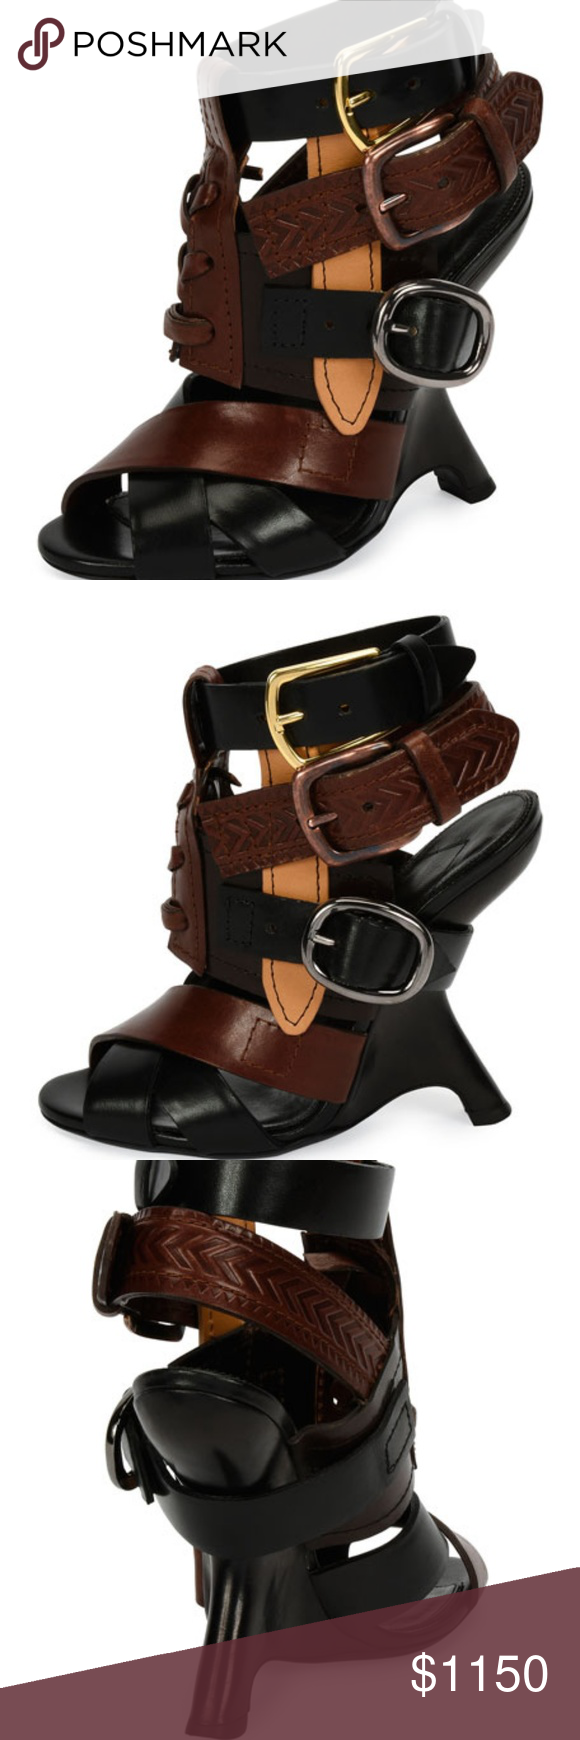 45e5e2931d1 Tom Ford Wedge Leather Sandal NWT  1950 TOM FORD leather wedge sandals.  Brand new in